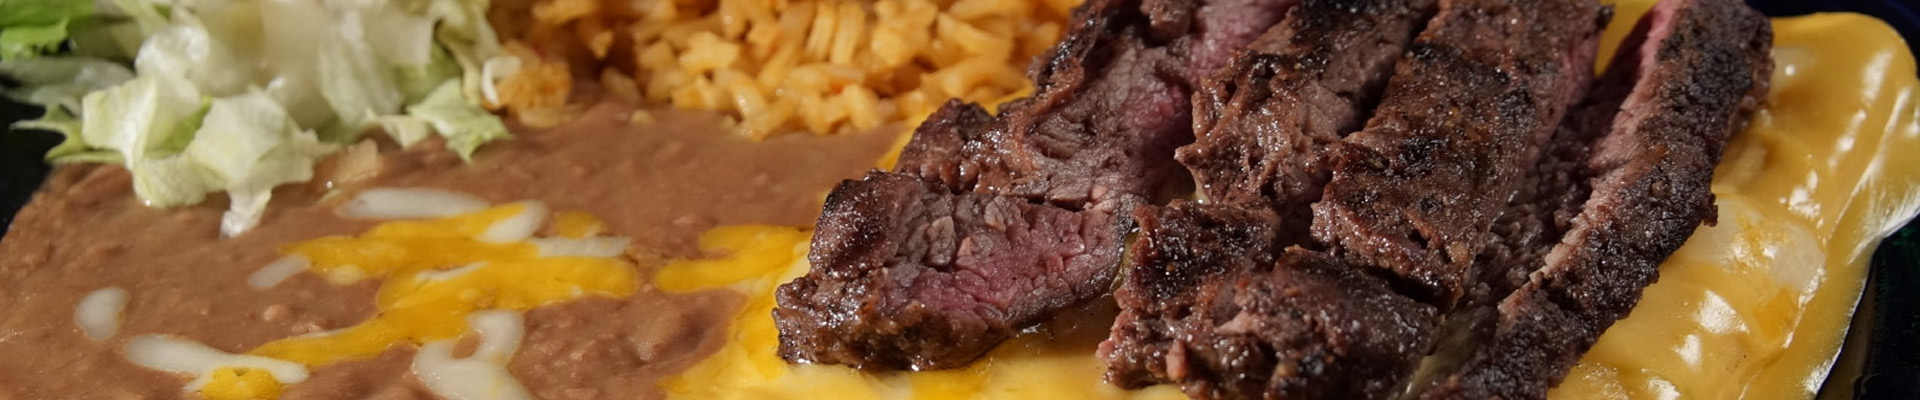 Beef meat with cheese, rice and vegetables to order in Nacogdoches Texas